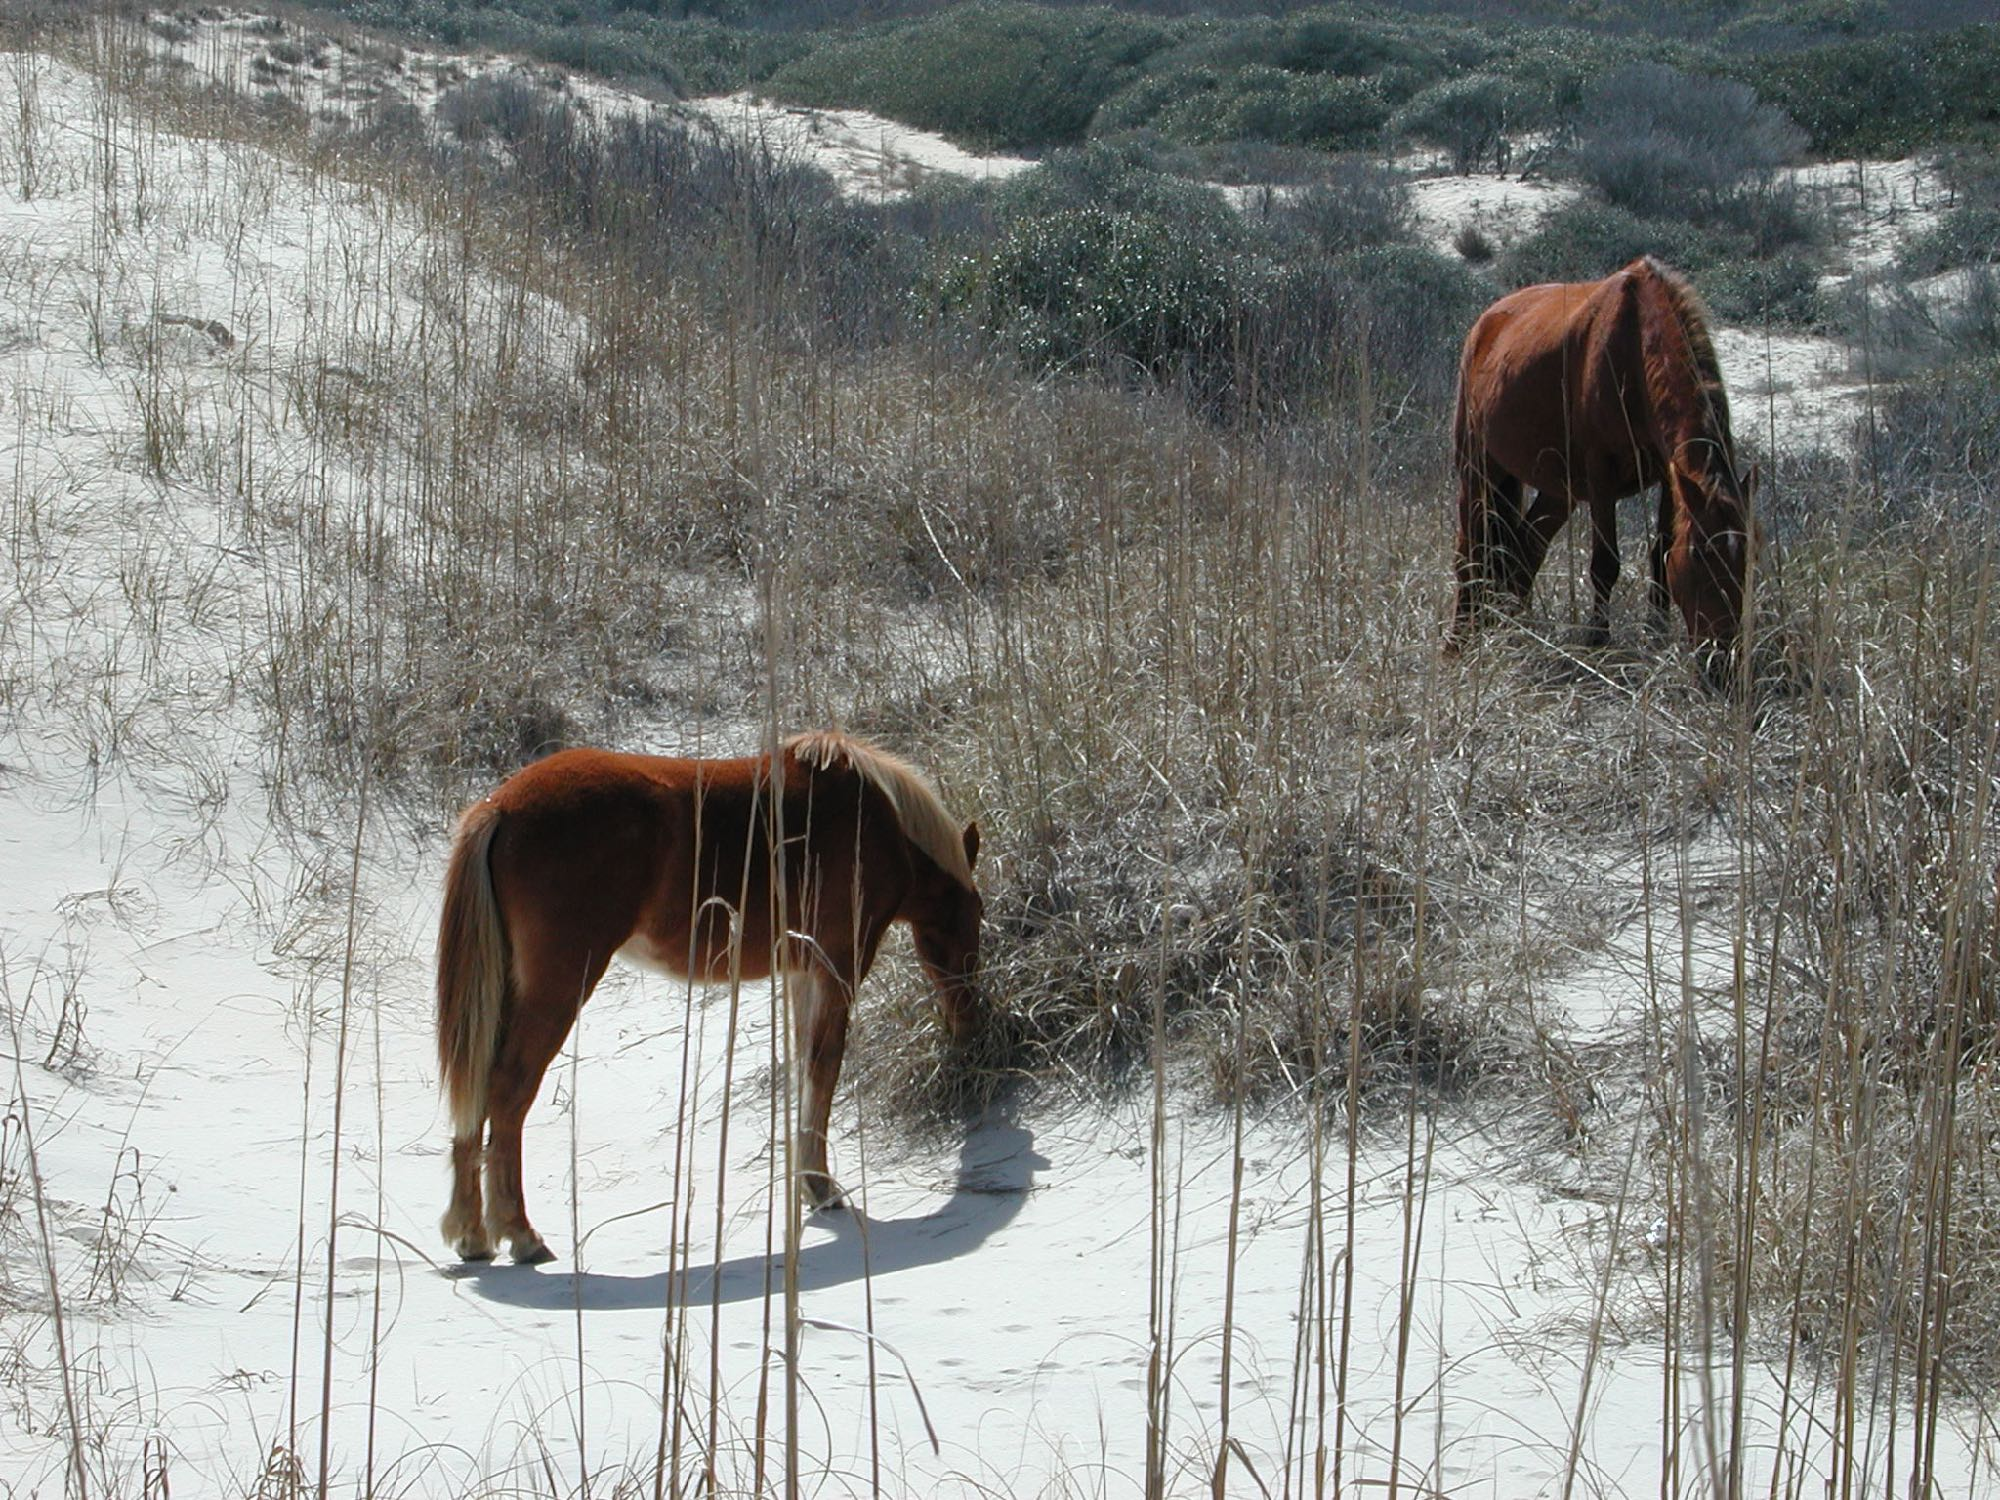 Wild ponies, Assateague, VA